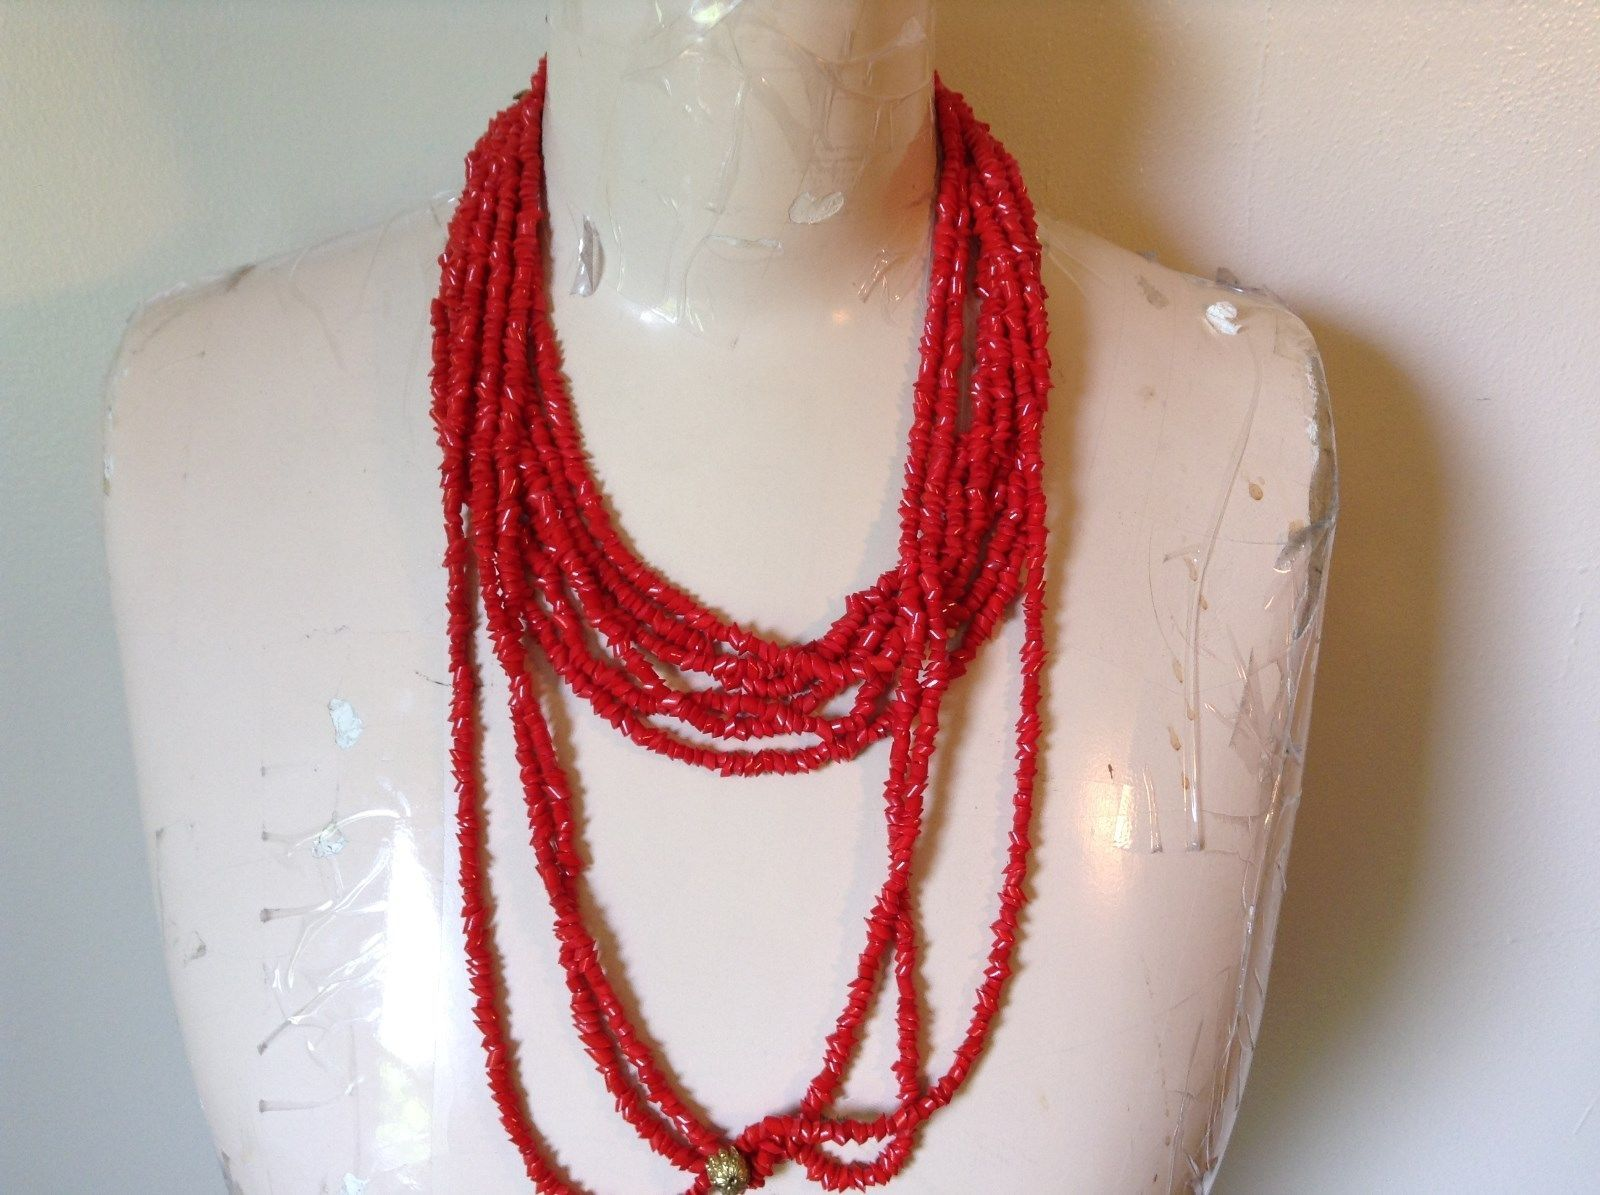 Red Coral Necklace with Two Lengths of Necklaces and Gold Clasps